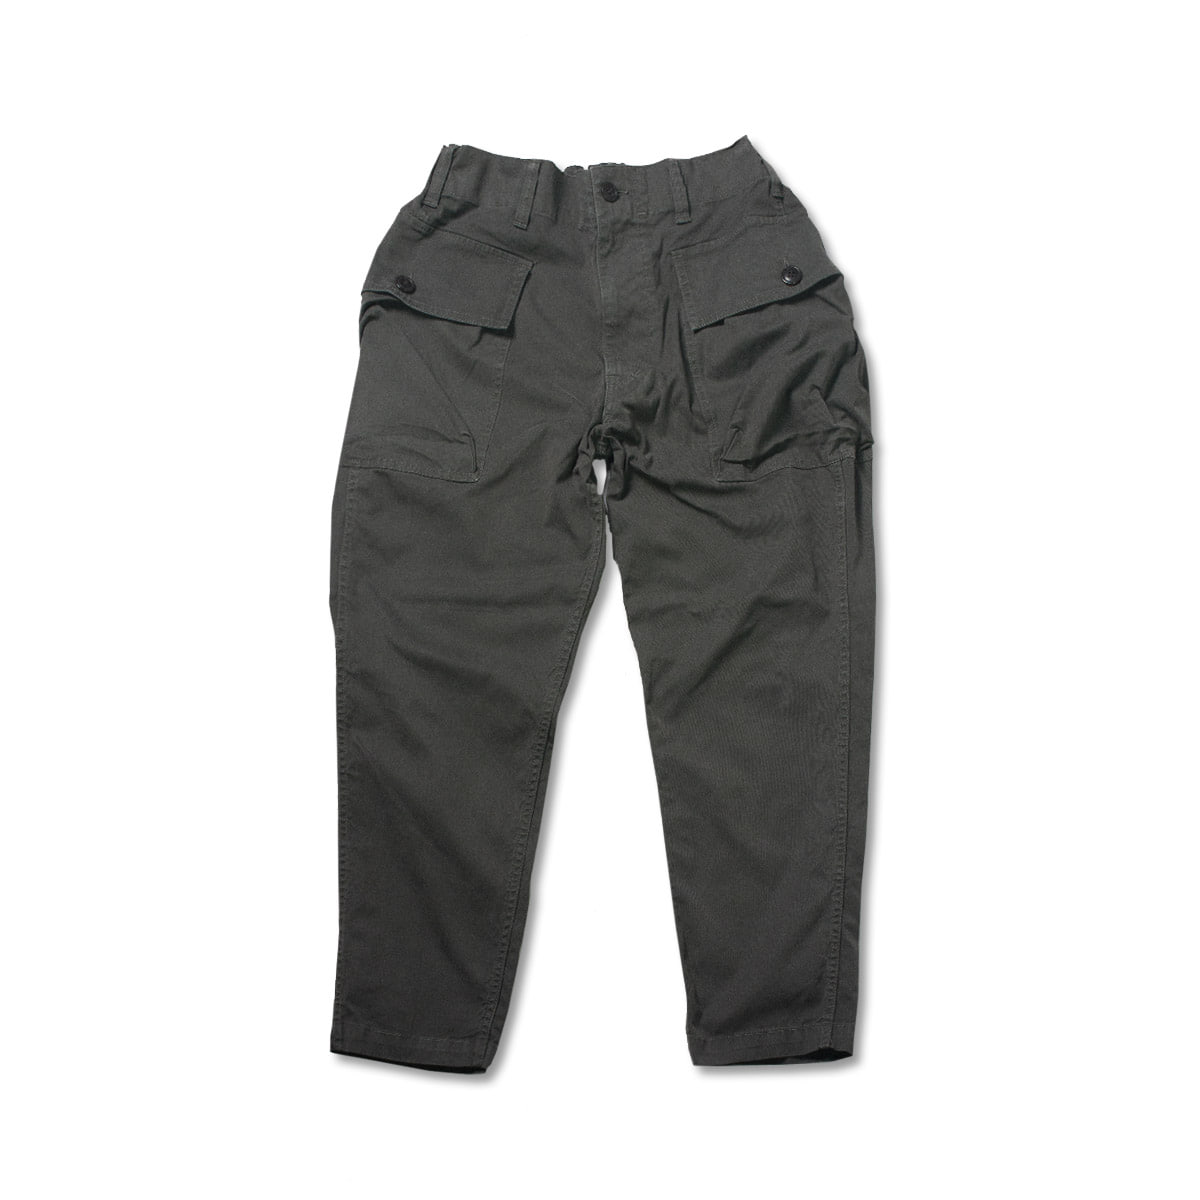 [SAGE DE CRET] TWILL COTTON CARGO PANTS 'CHARCOAL'